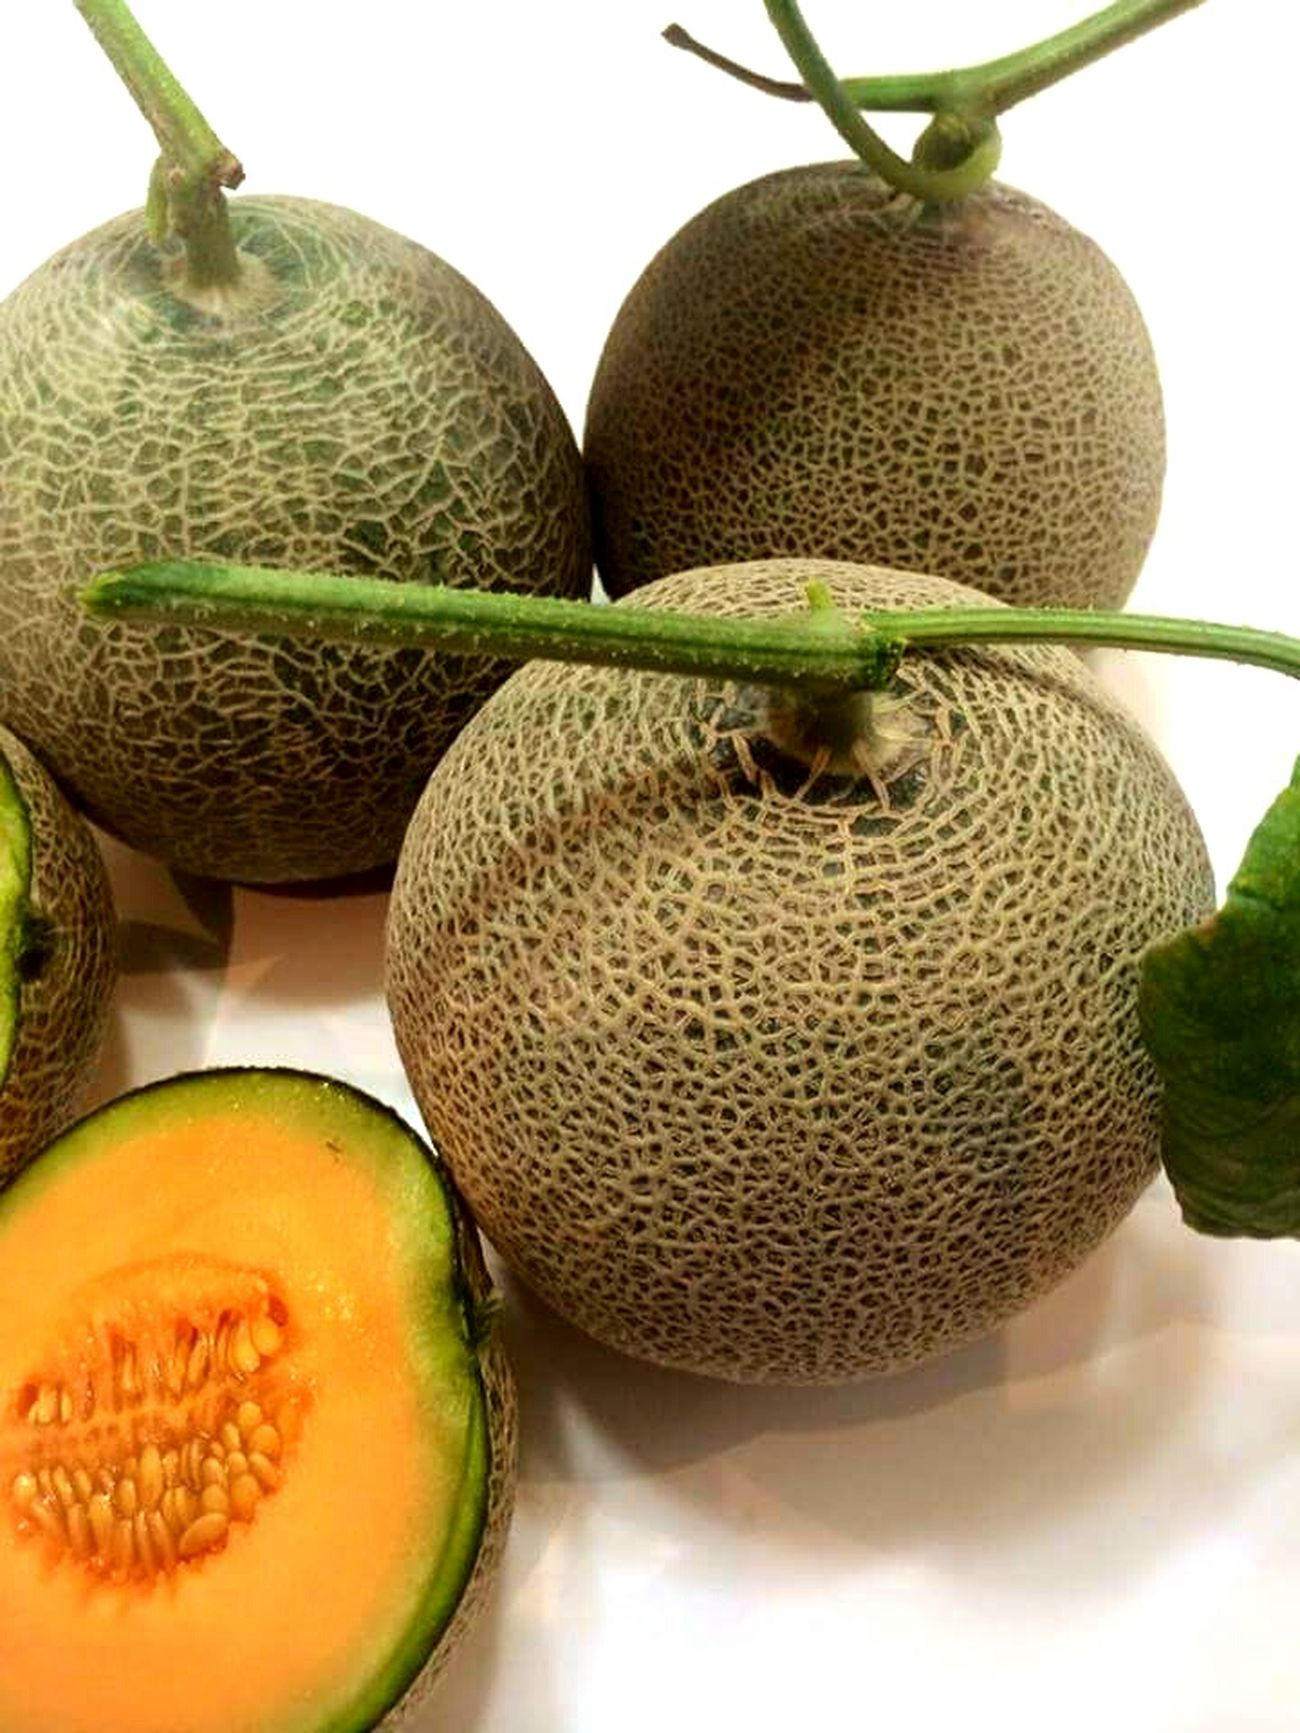 Taking Photos Cantaloup Fruitporn Awesome_shots Lovelovelove Open Edit Eym Em Best Edits Dietfood Photos Around You Great Capture